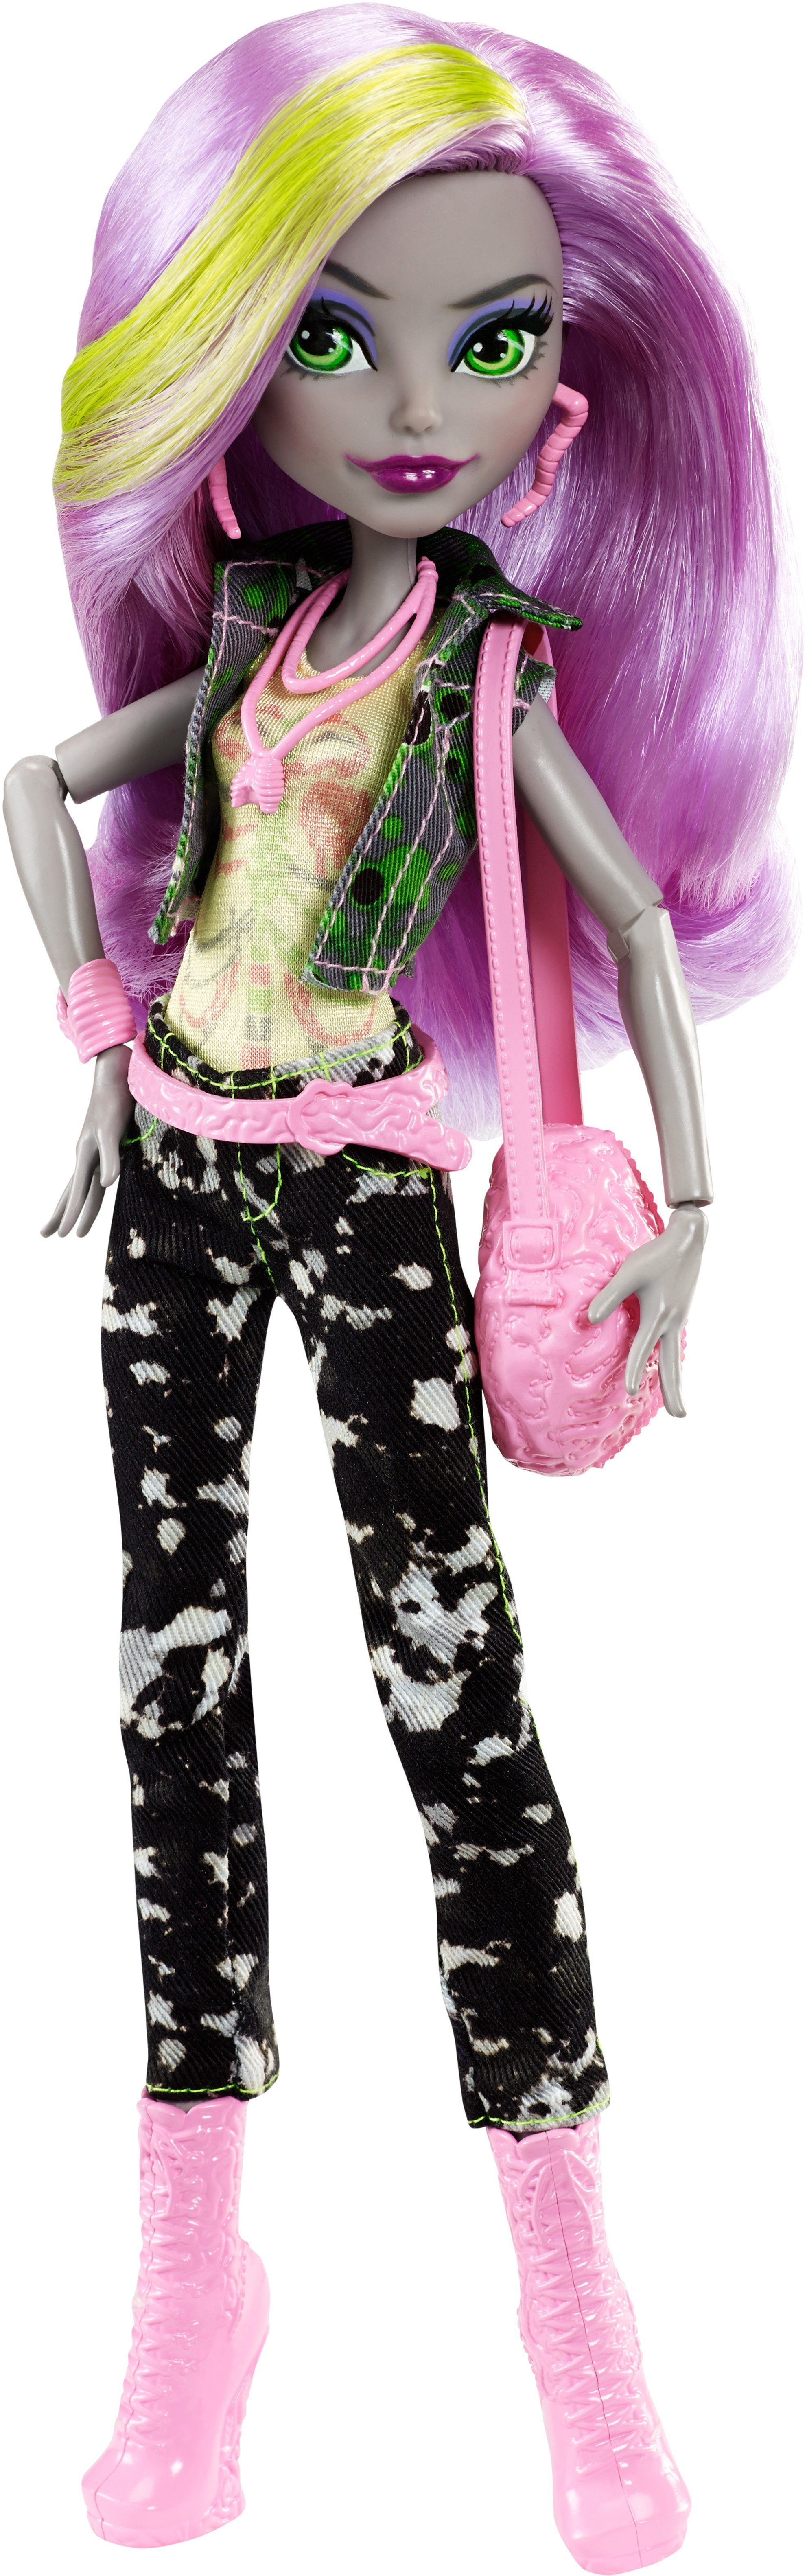 Mattel, Puppe, »Monster High, Willkommen an der Monster High, Moanica D´Kay«